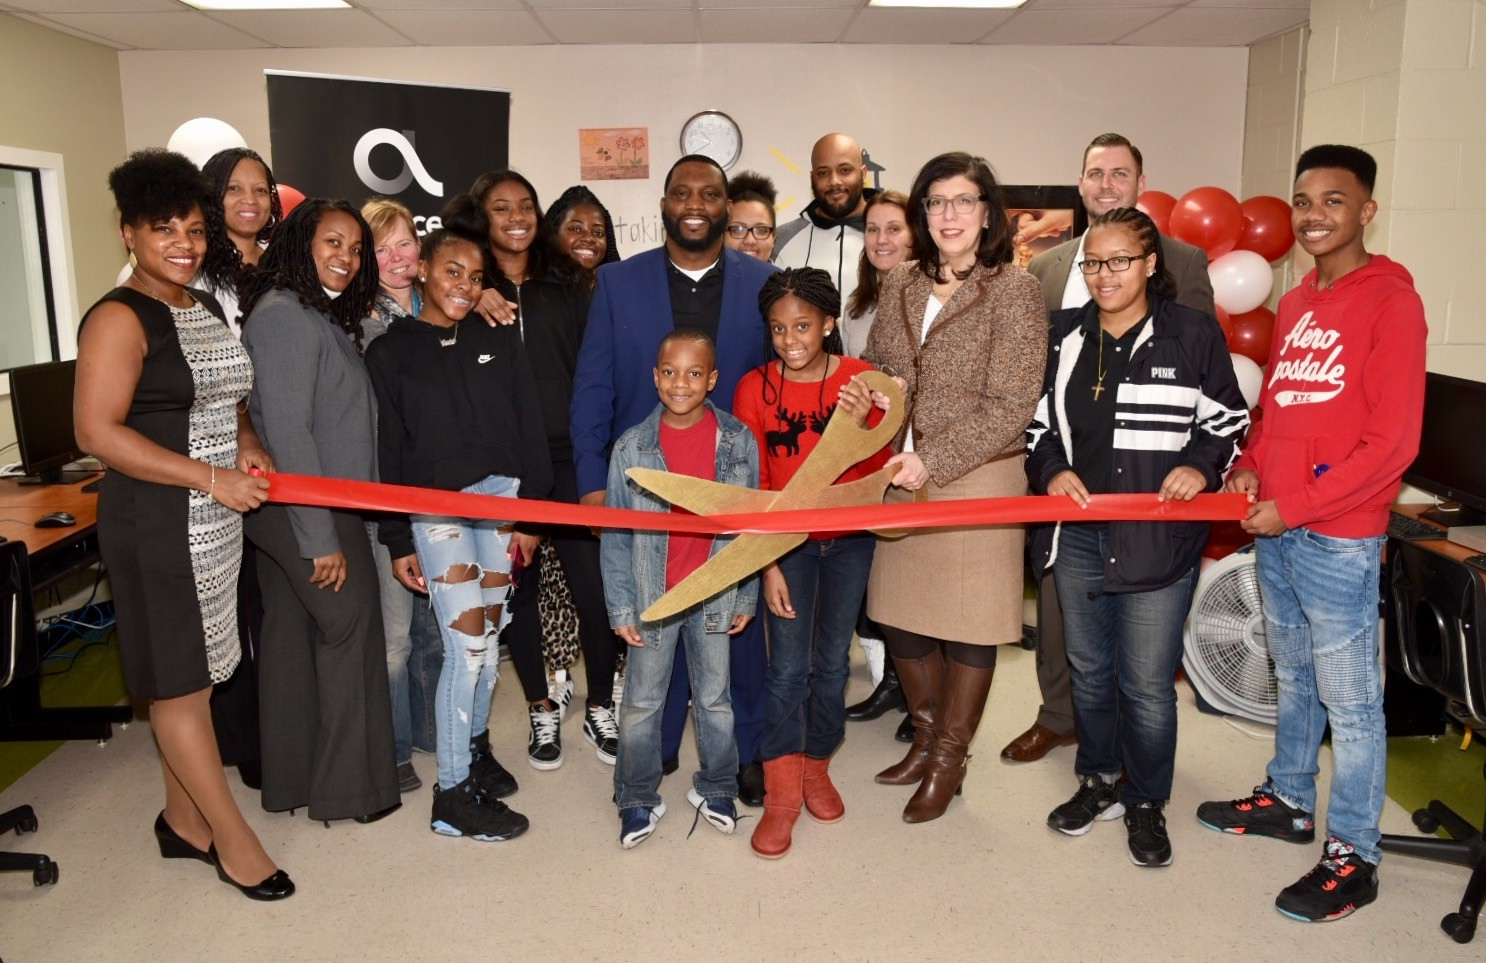 Members of the Martin Luther King Center gathered with District Attorney Madeline Singas on Feb. 14 for a ribbon cutting of the center's newly upgraded computer lab.